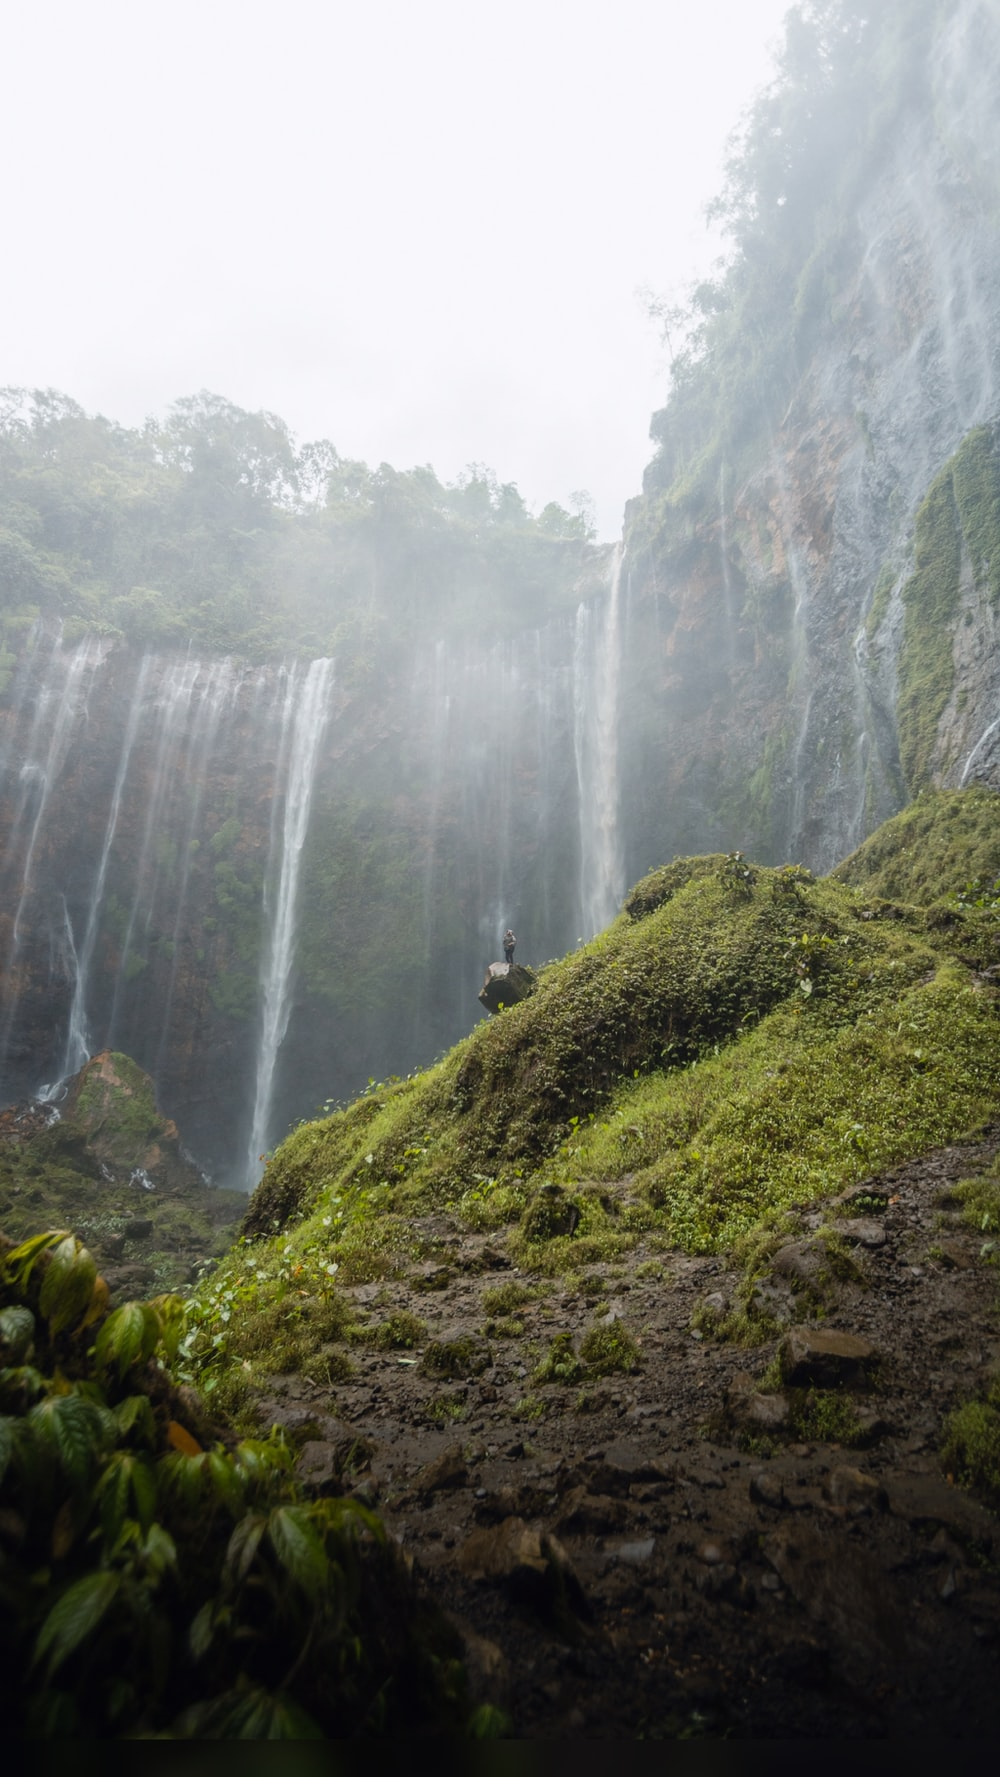 waterfalls in the middle of green grass covered mountain